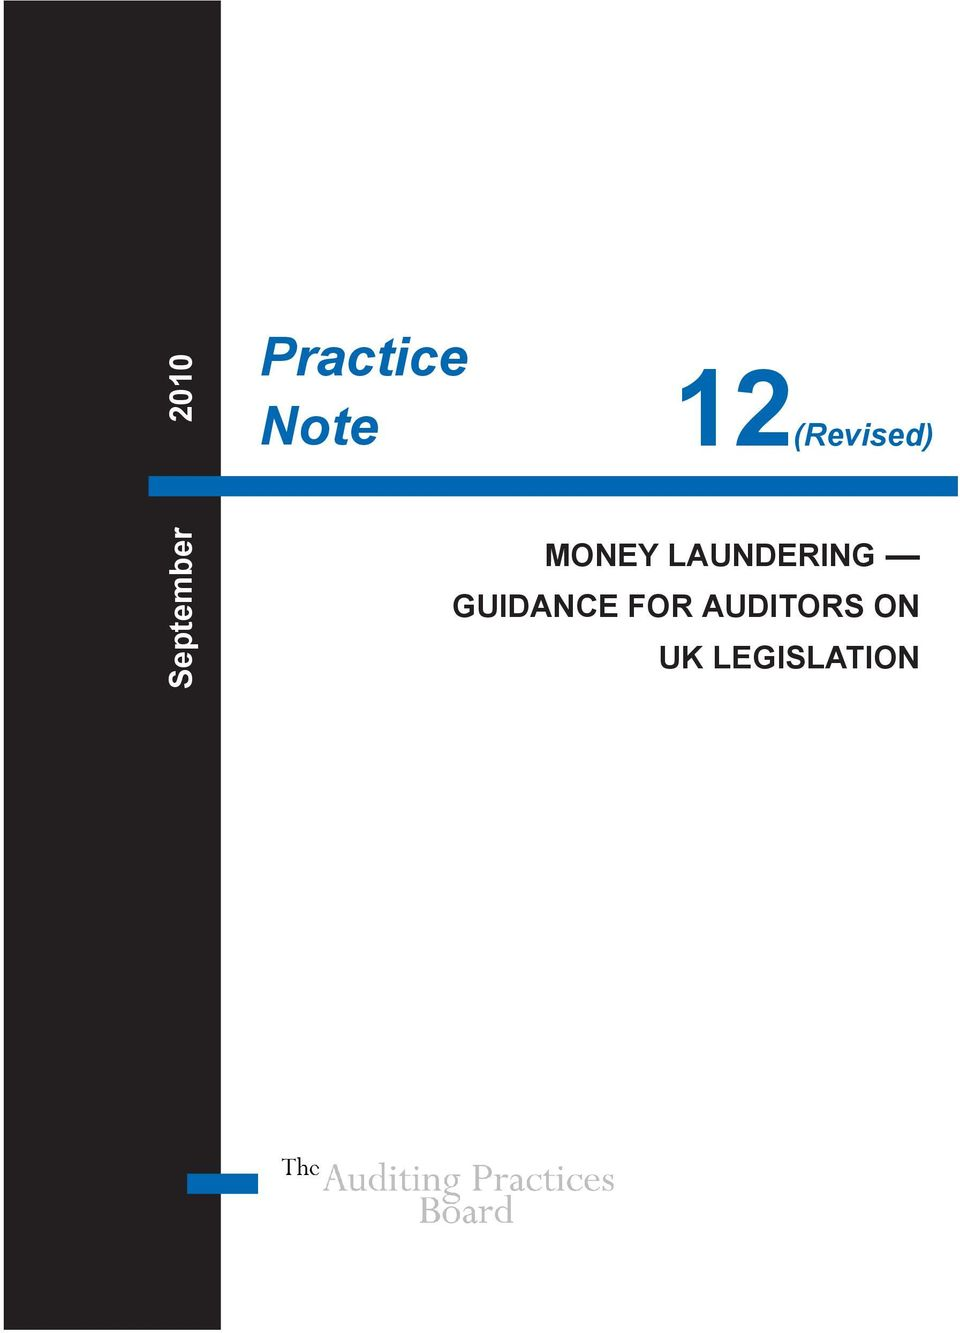 LAUNDERING GUIDANCE FOR